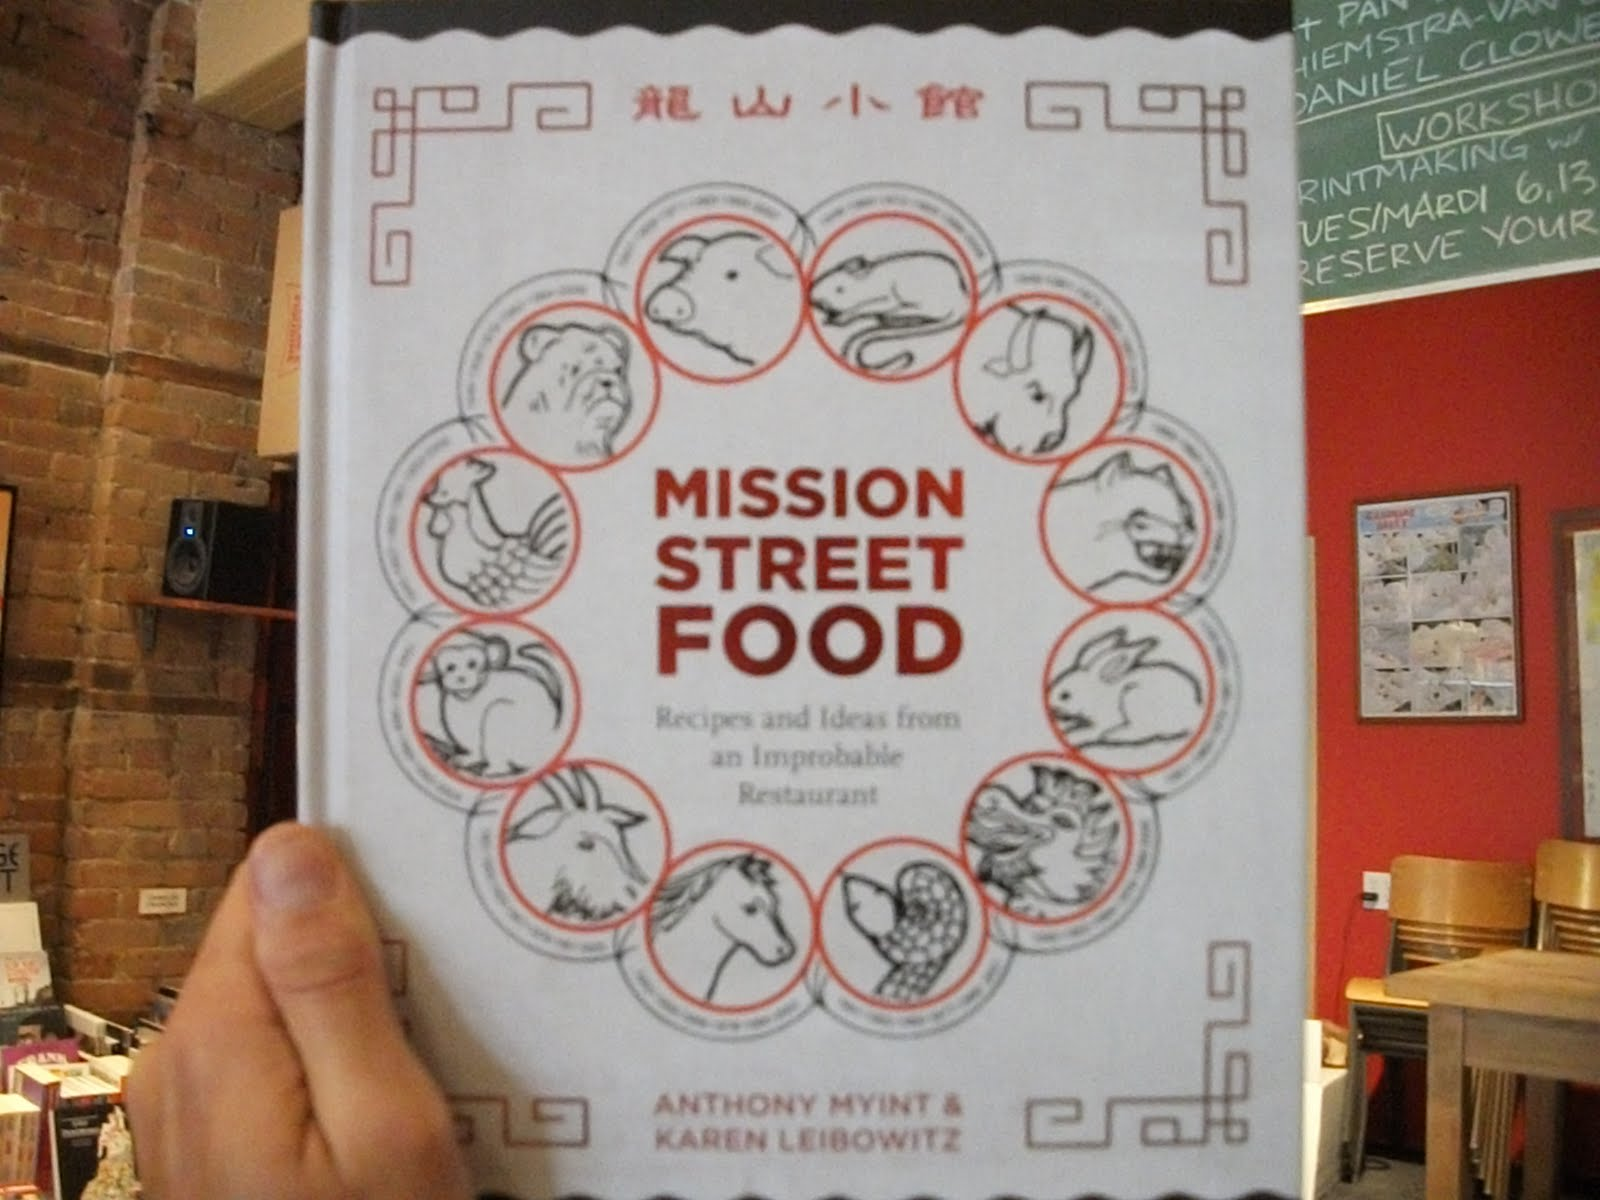 211 bernard mission street food recipes and ideas from an mission street food recipes and ideas from an improbable restaurant forumfinder Choice Image